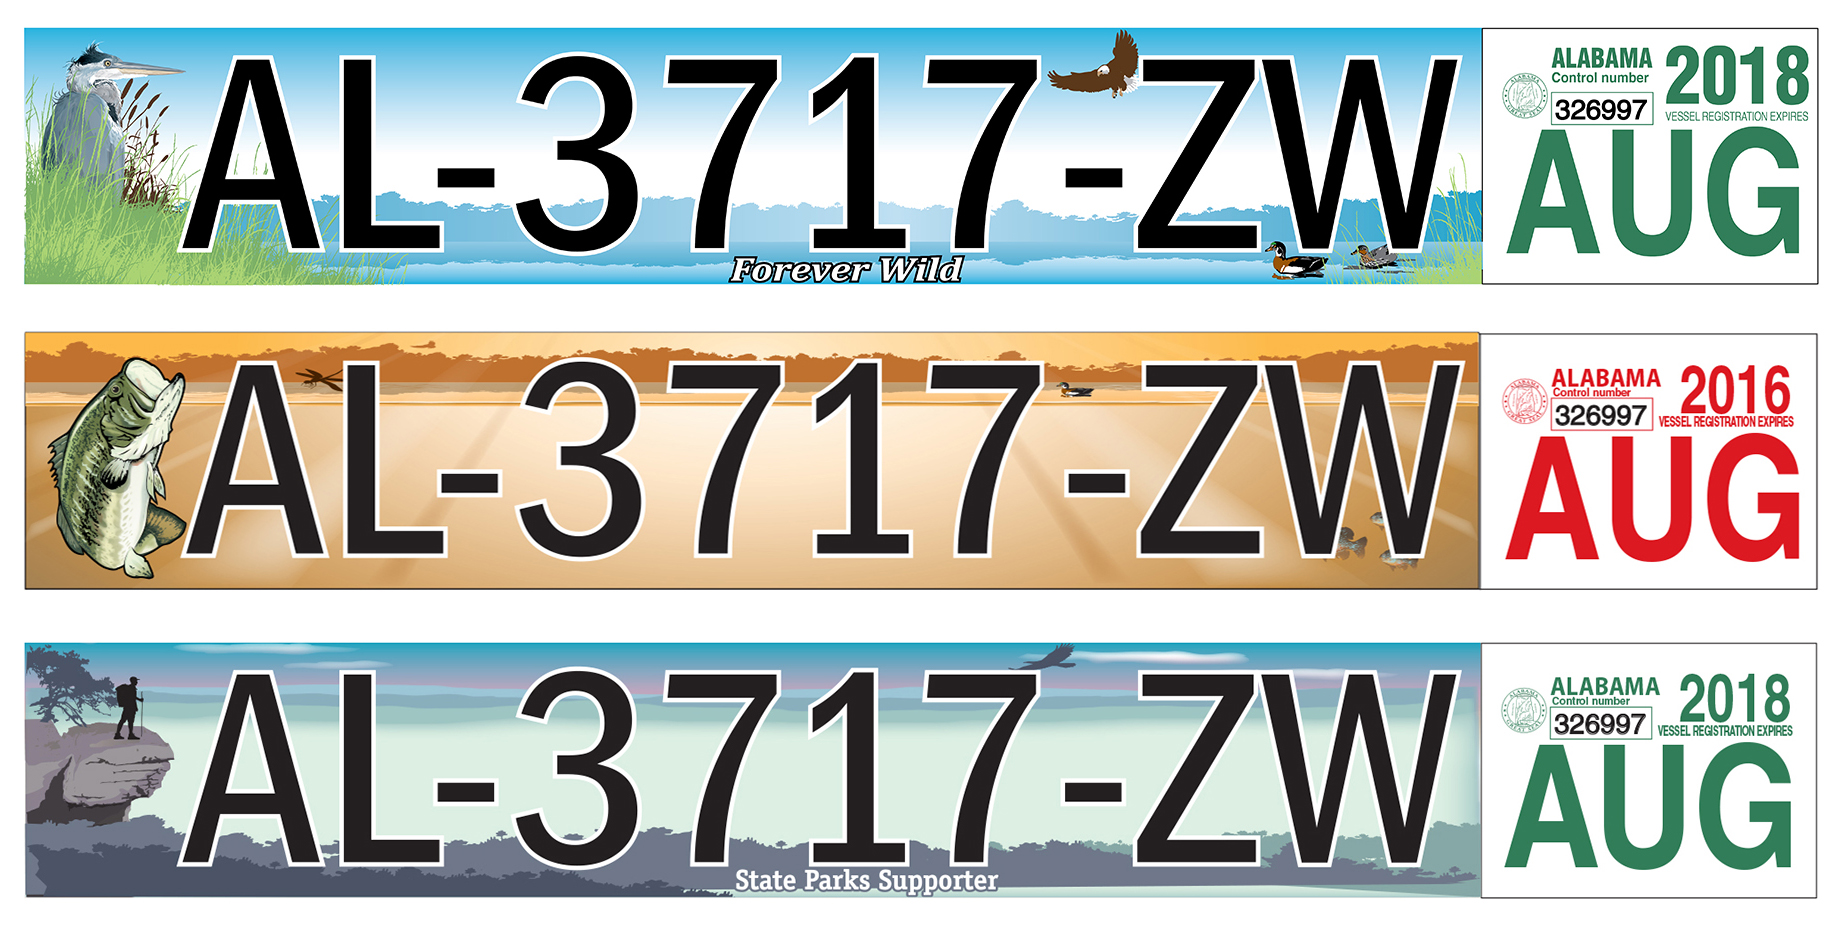 For more information about the availability of the distinctive vessel identification stickers, contact your local probate office.